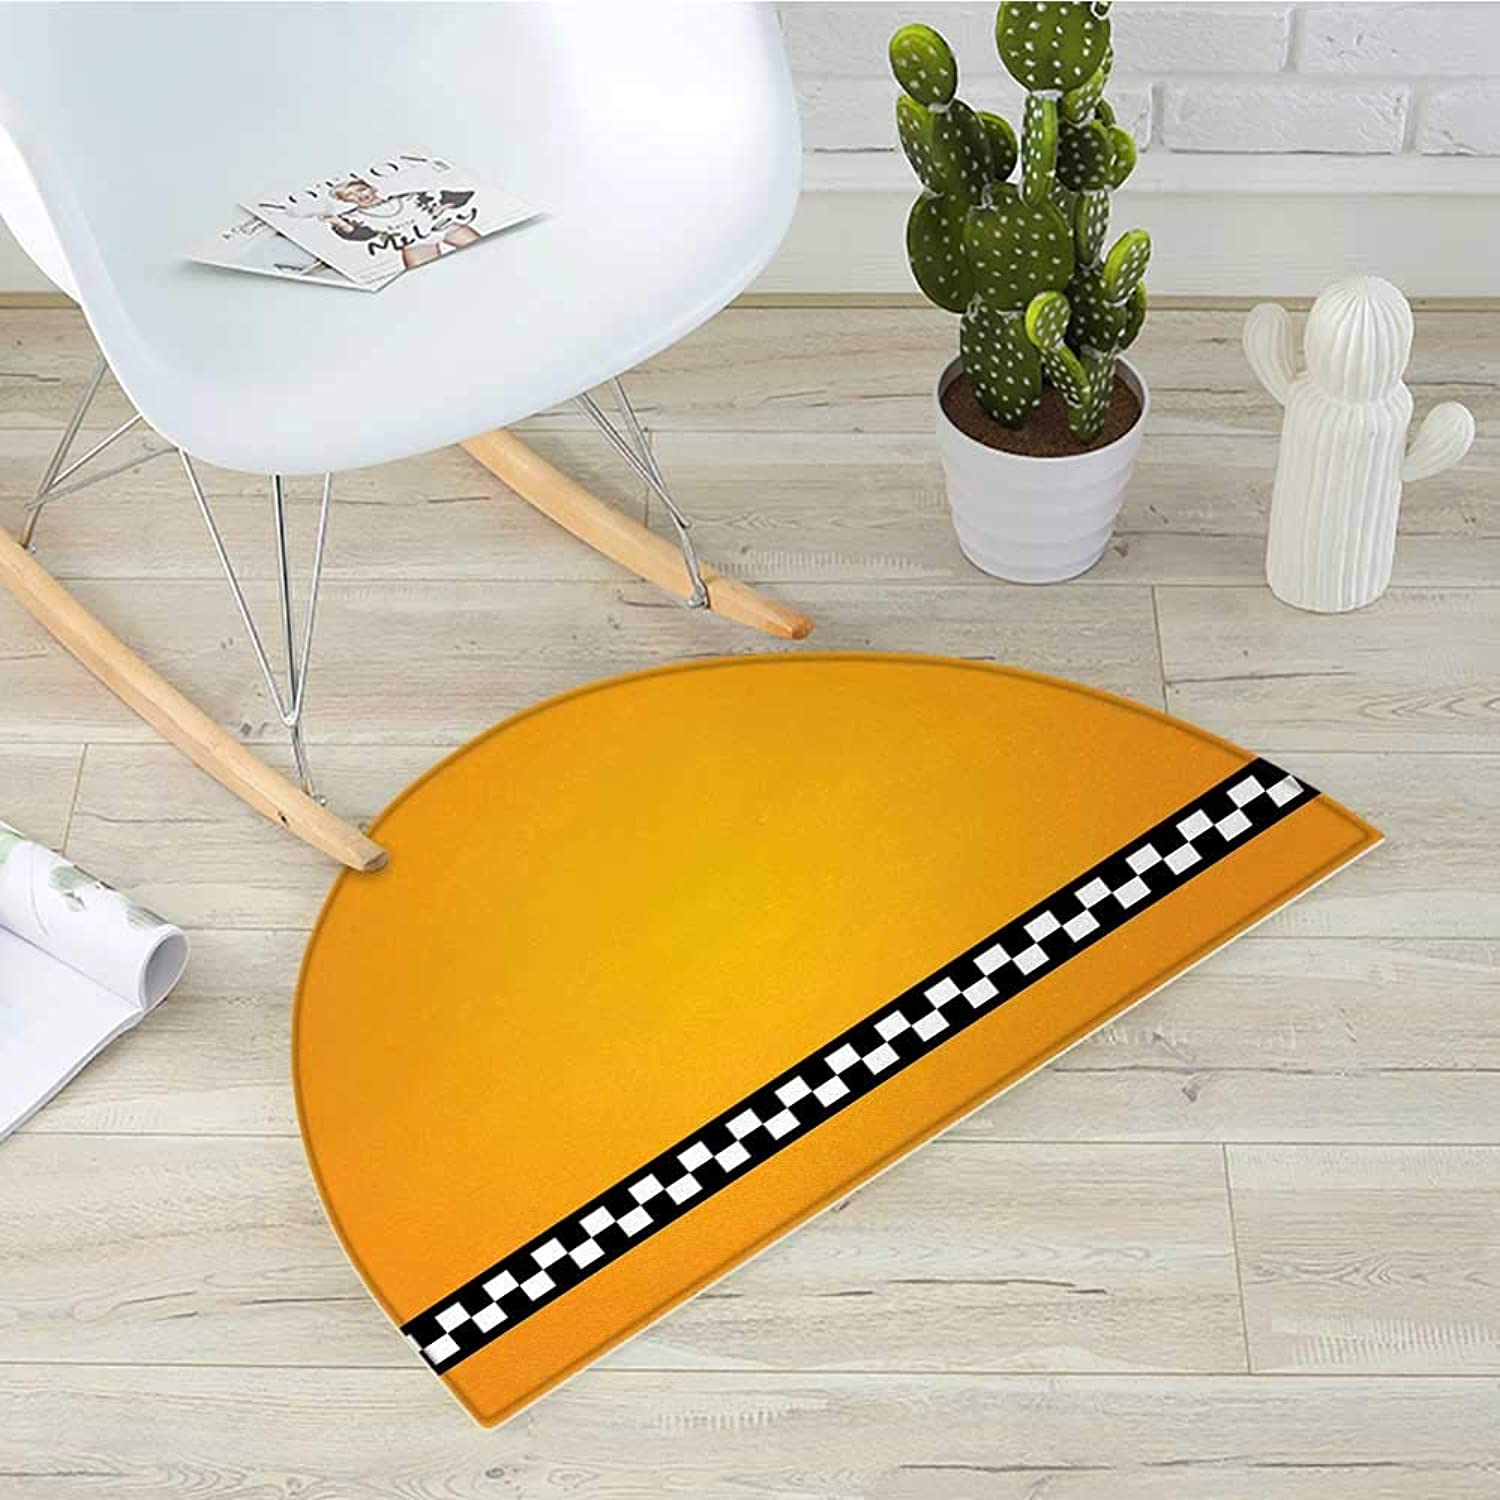 Yellow Semicircular CushionTaxi Cab Car Yellow with The line of Checkers Classical Artistic Print Entry Door Mat H 31.5  xD 47.2  orange White and Black